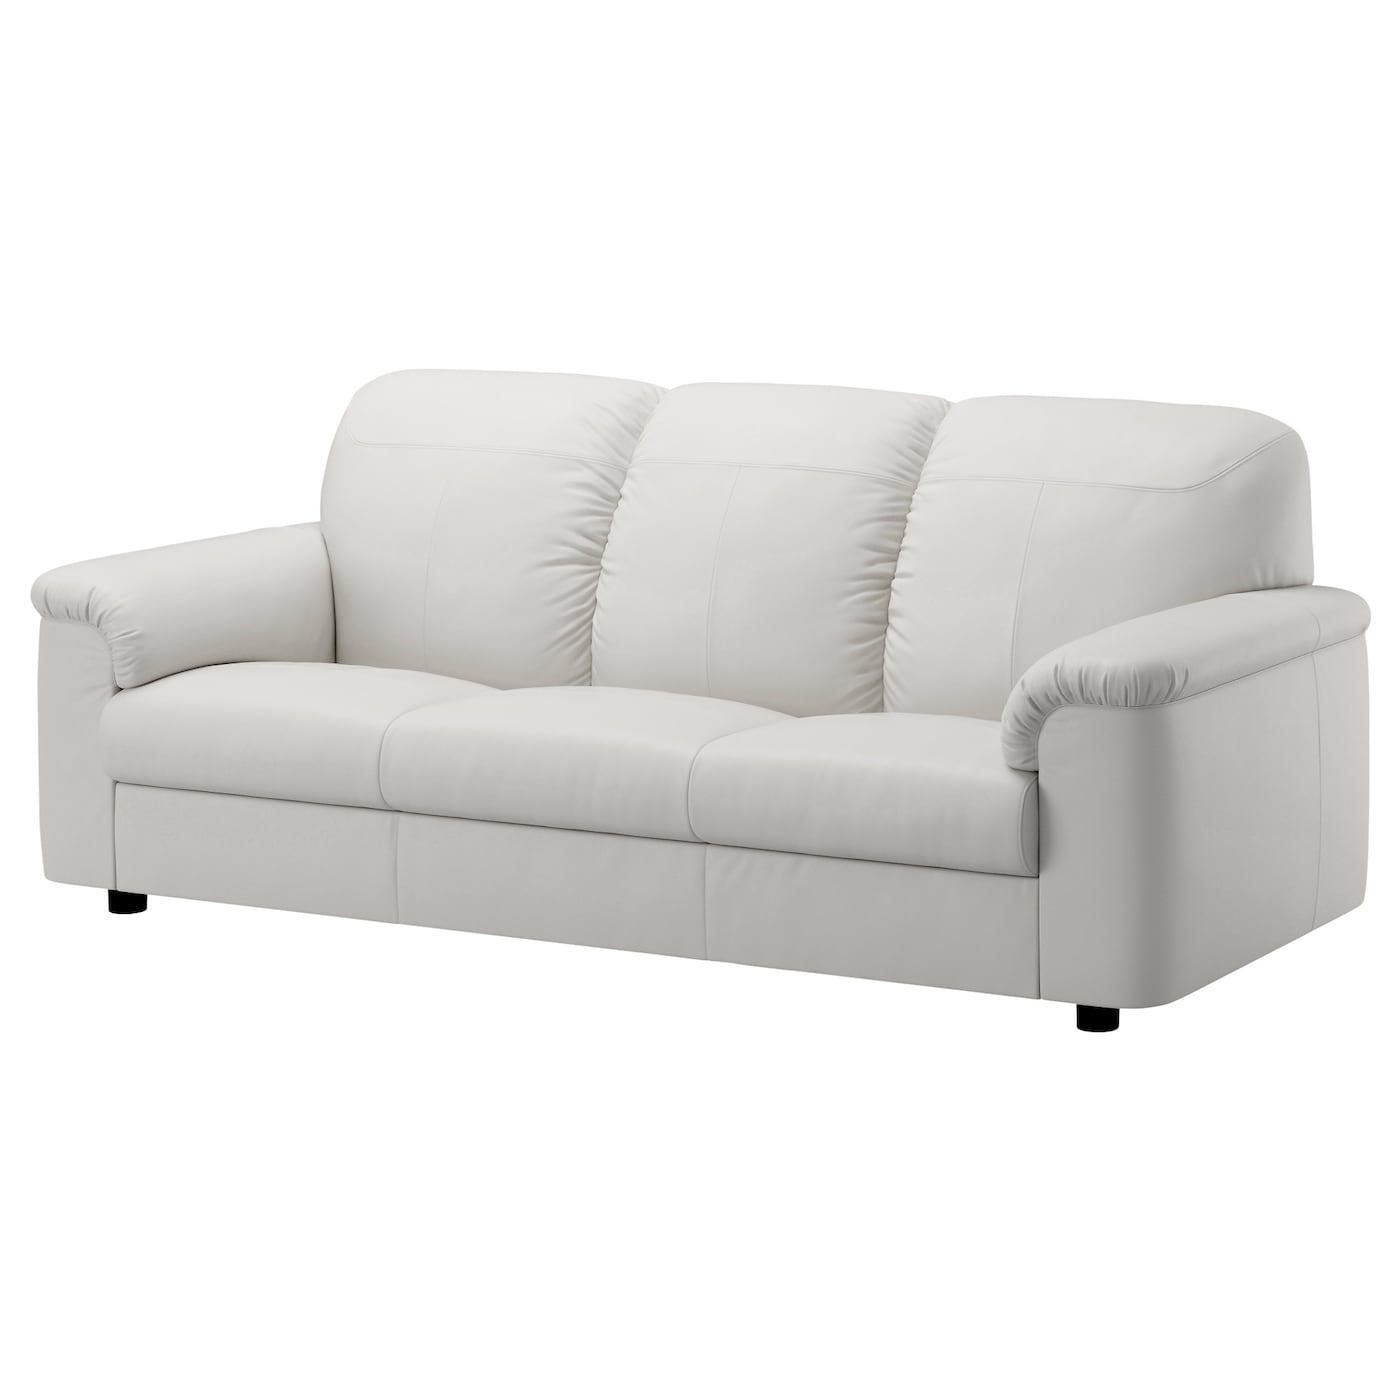 Ikea White Leather Couch Sofas